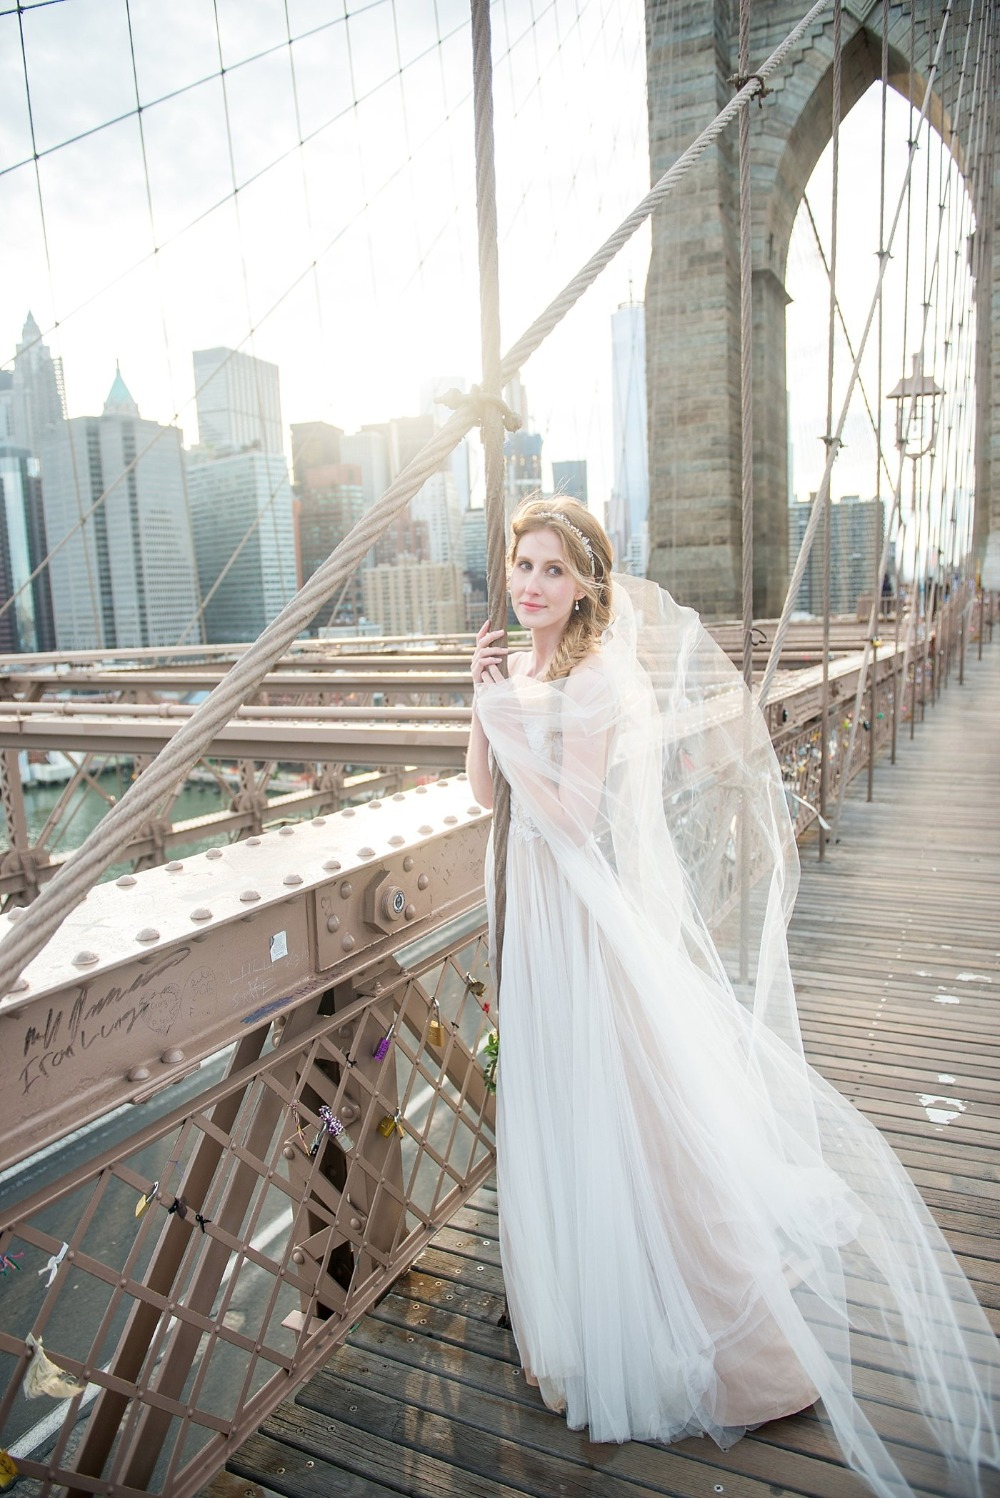 Lovely bridal portrait on the Brooklyn bridge